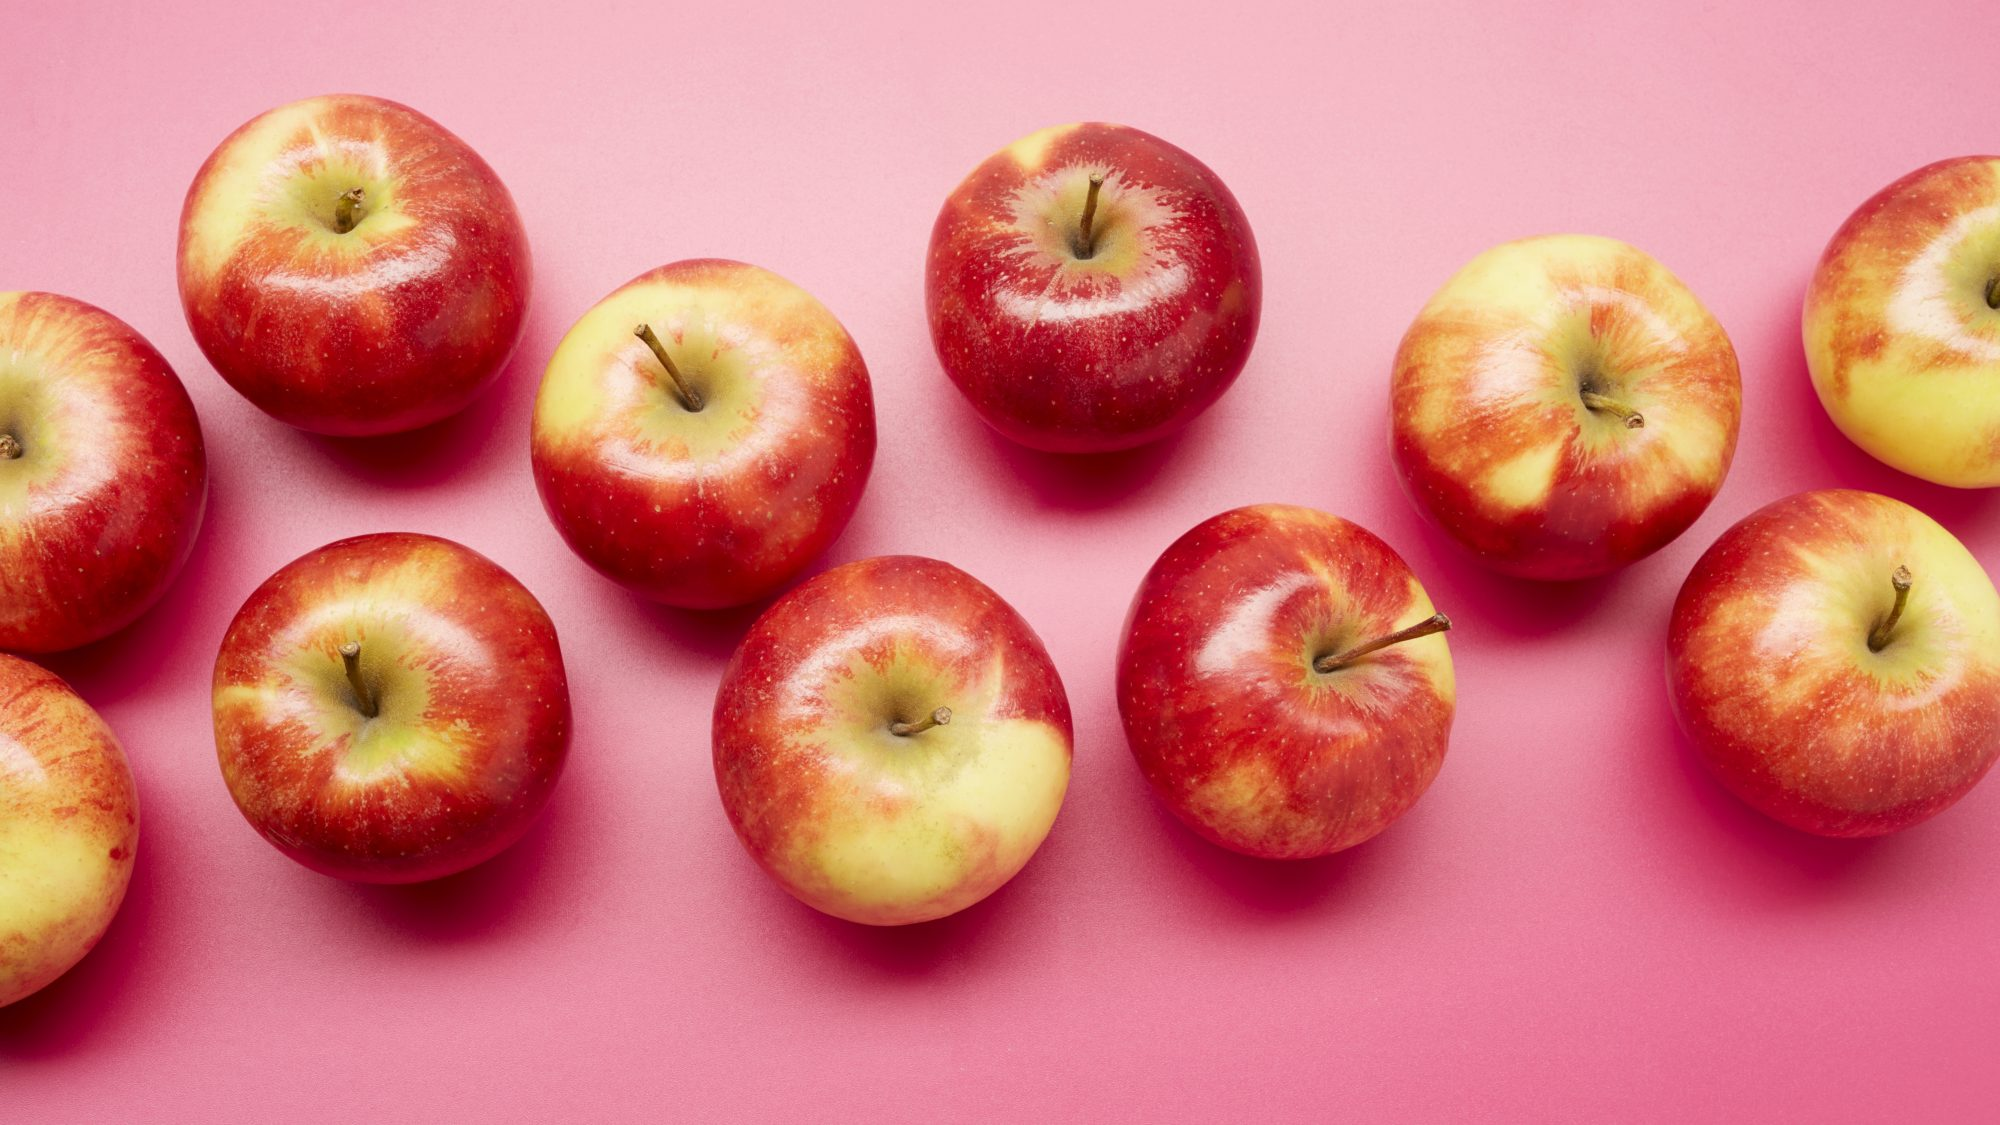 How to wash apples - cleaning methods for apples